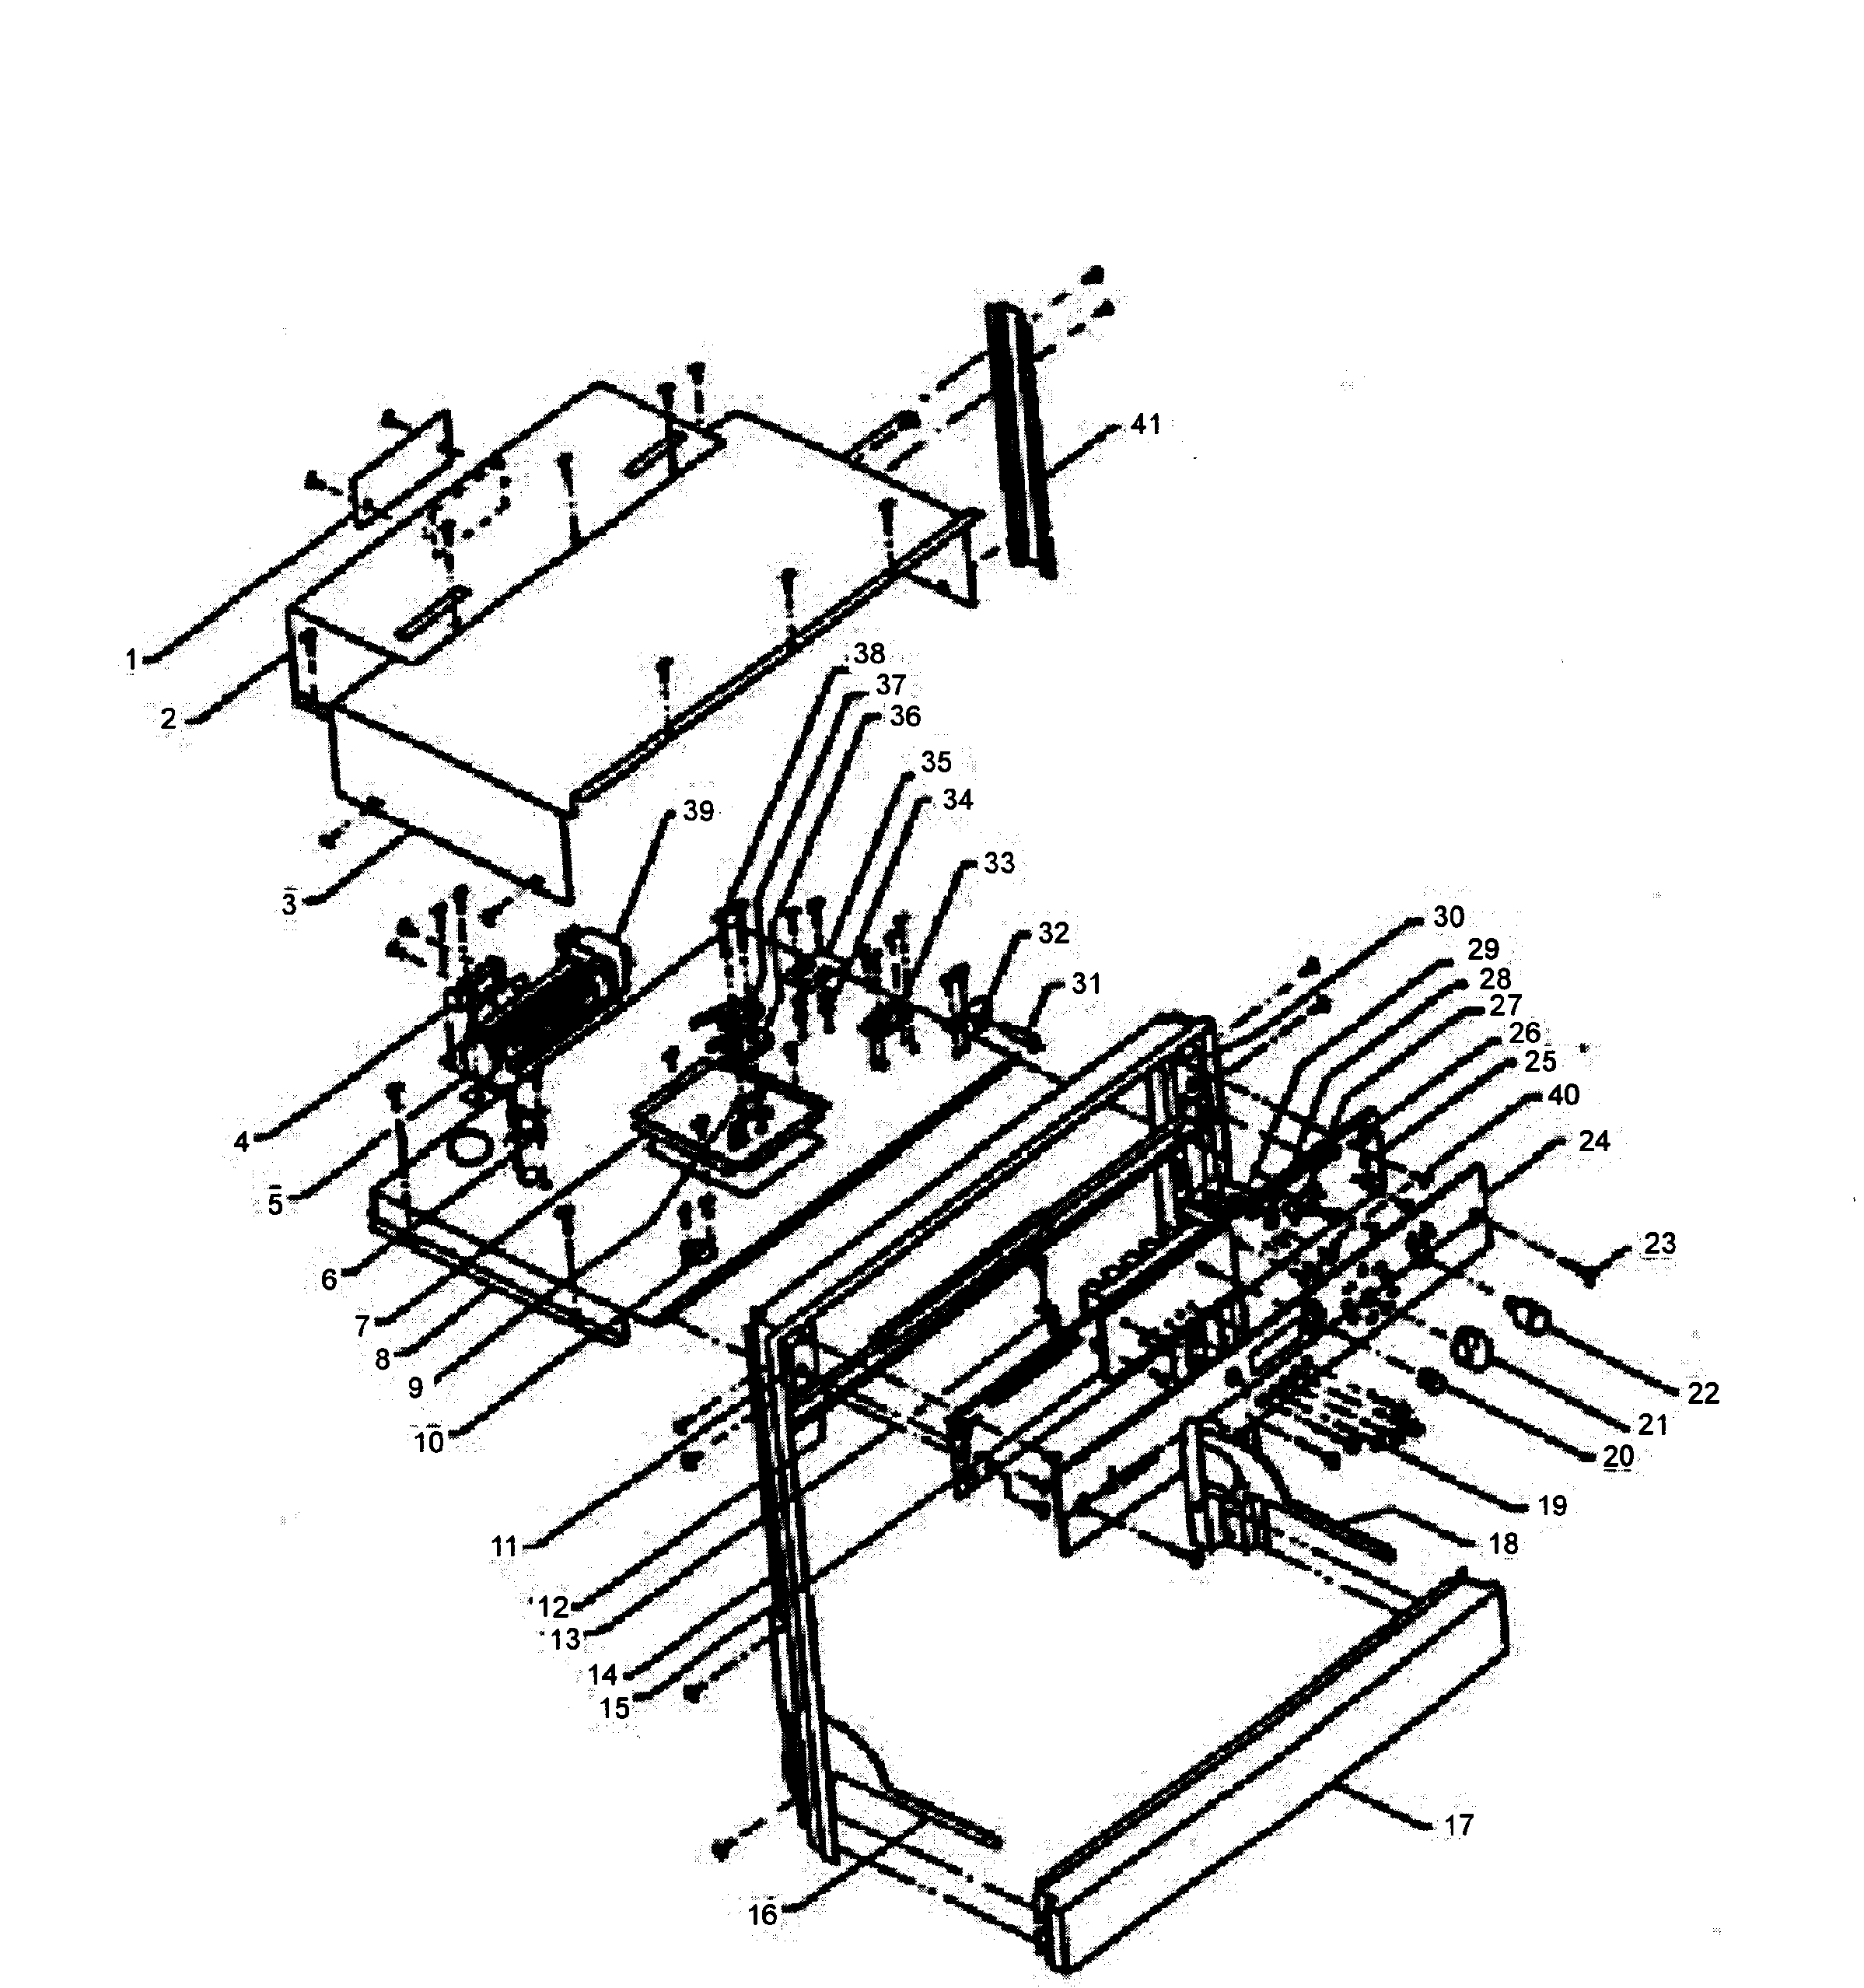 W305 Oven Trim/chassis Parts diagram